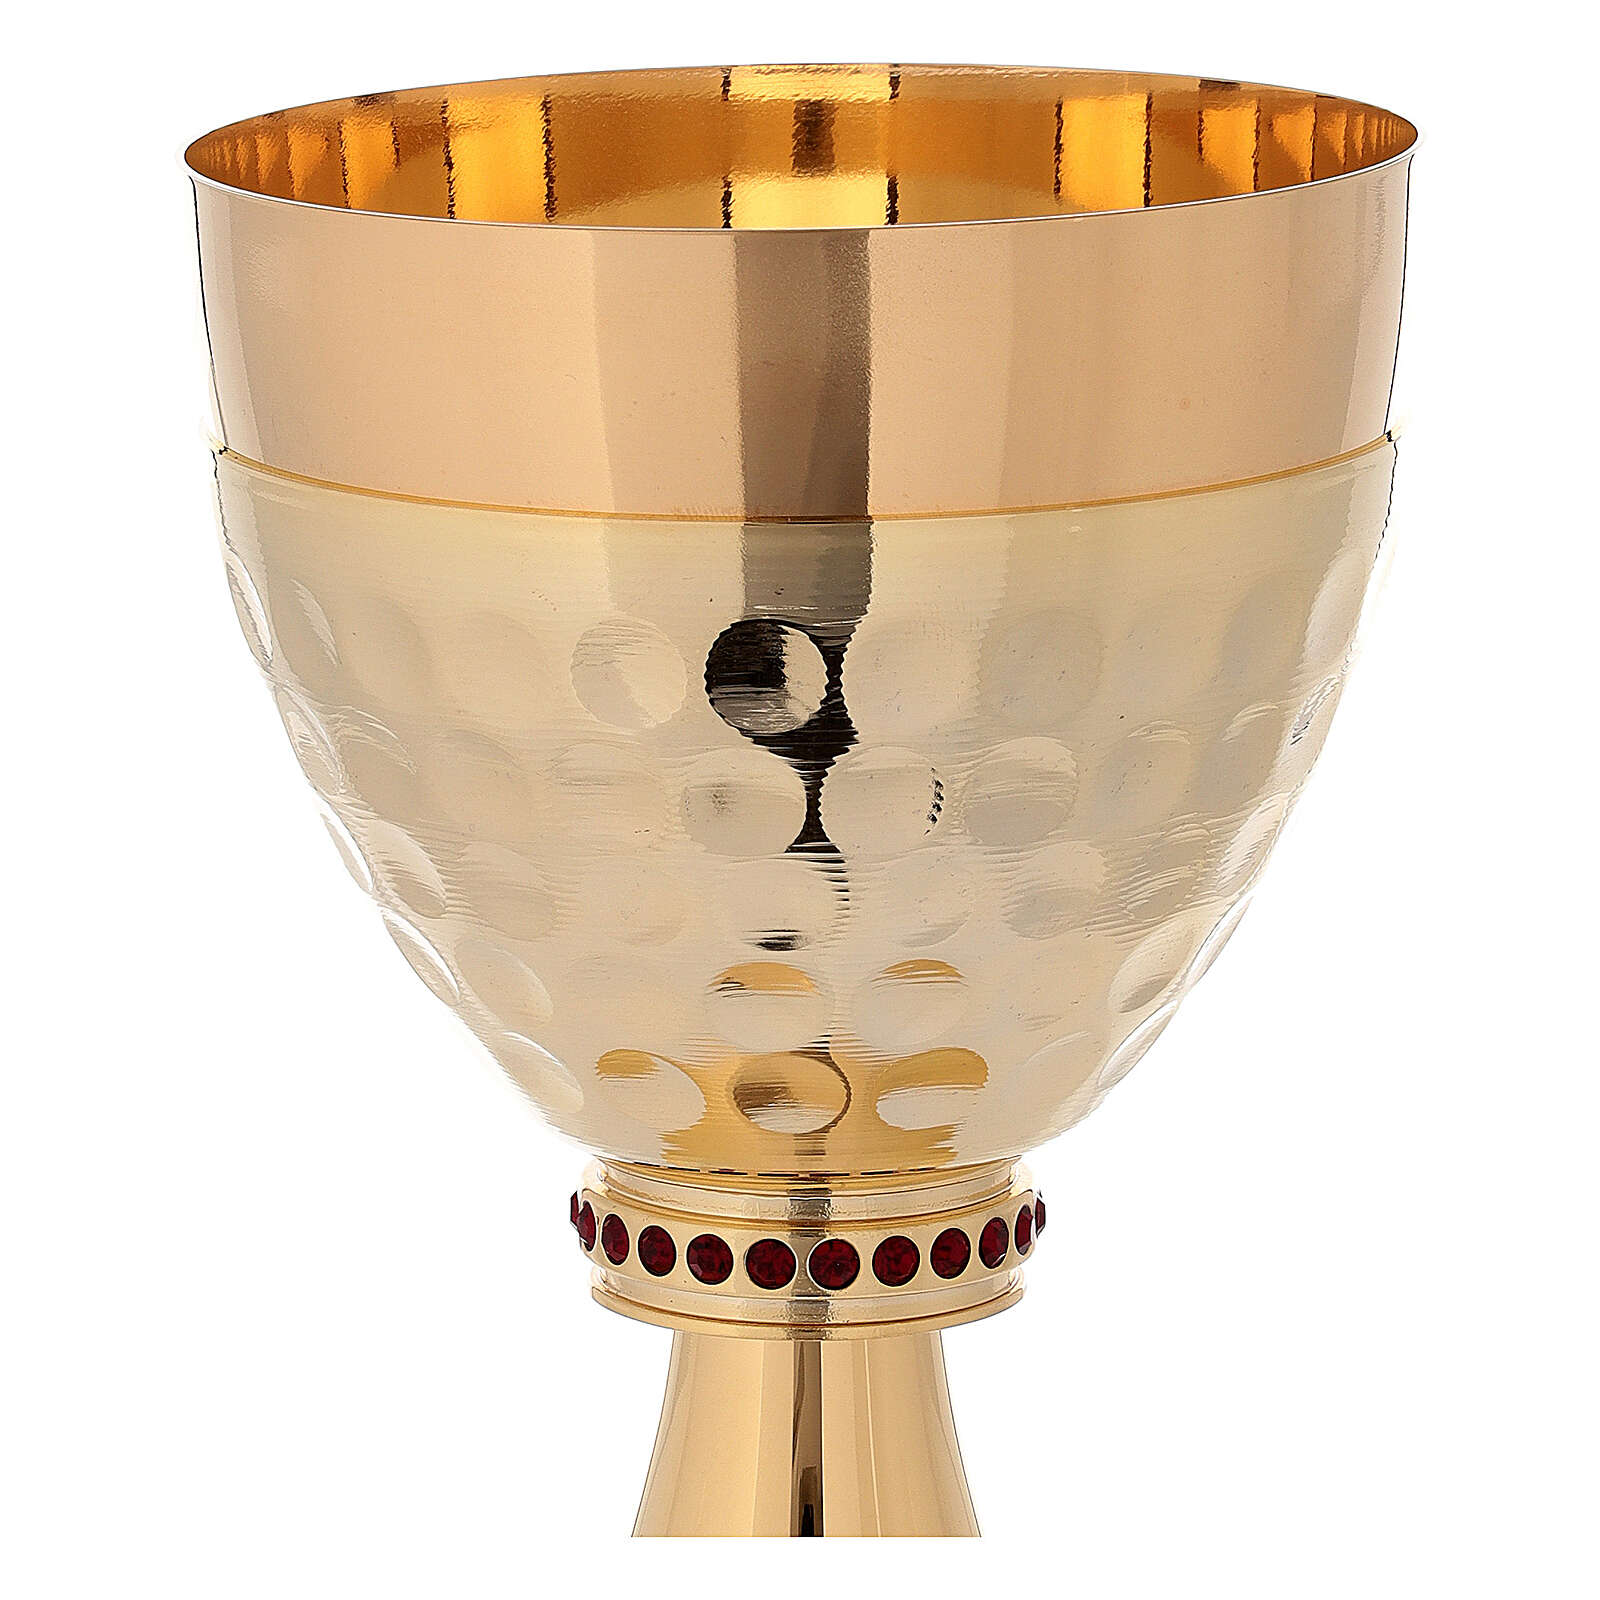 Chalice and ciborium in 24-karat gold plated brass hammered cup 4